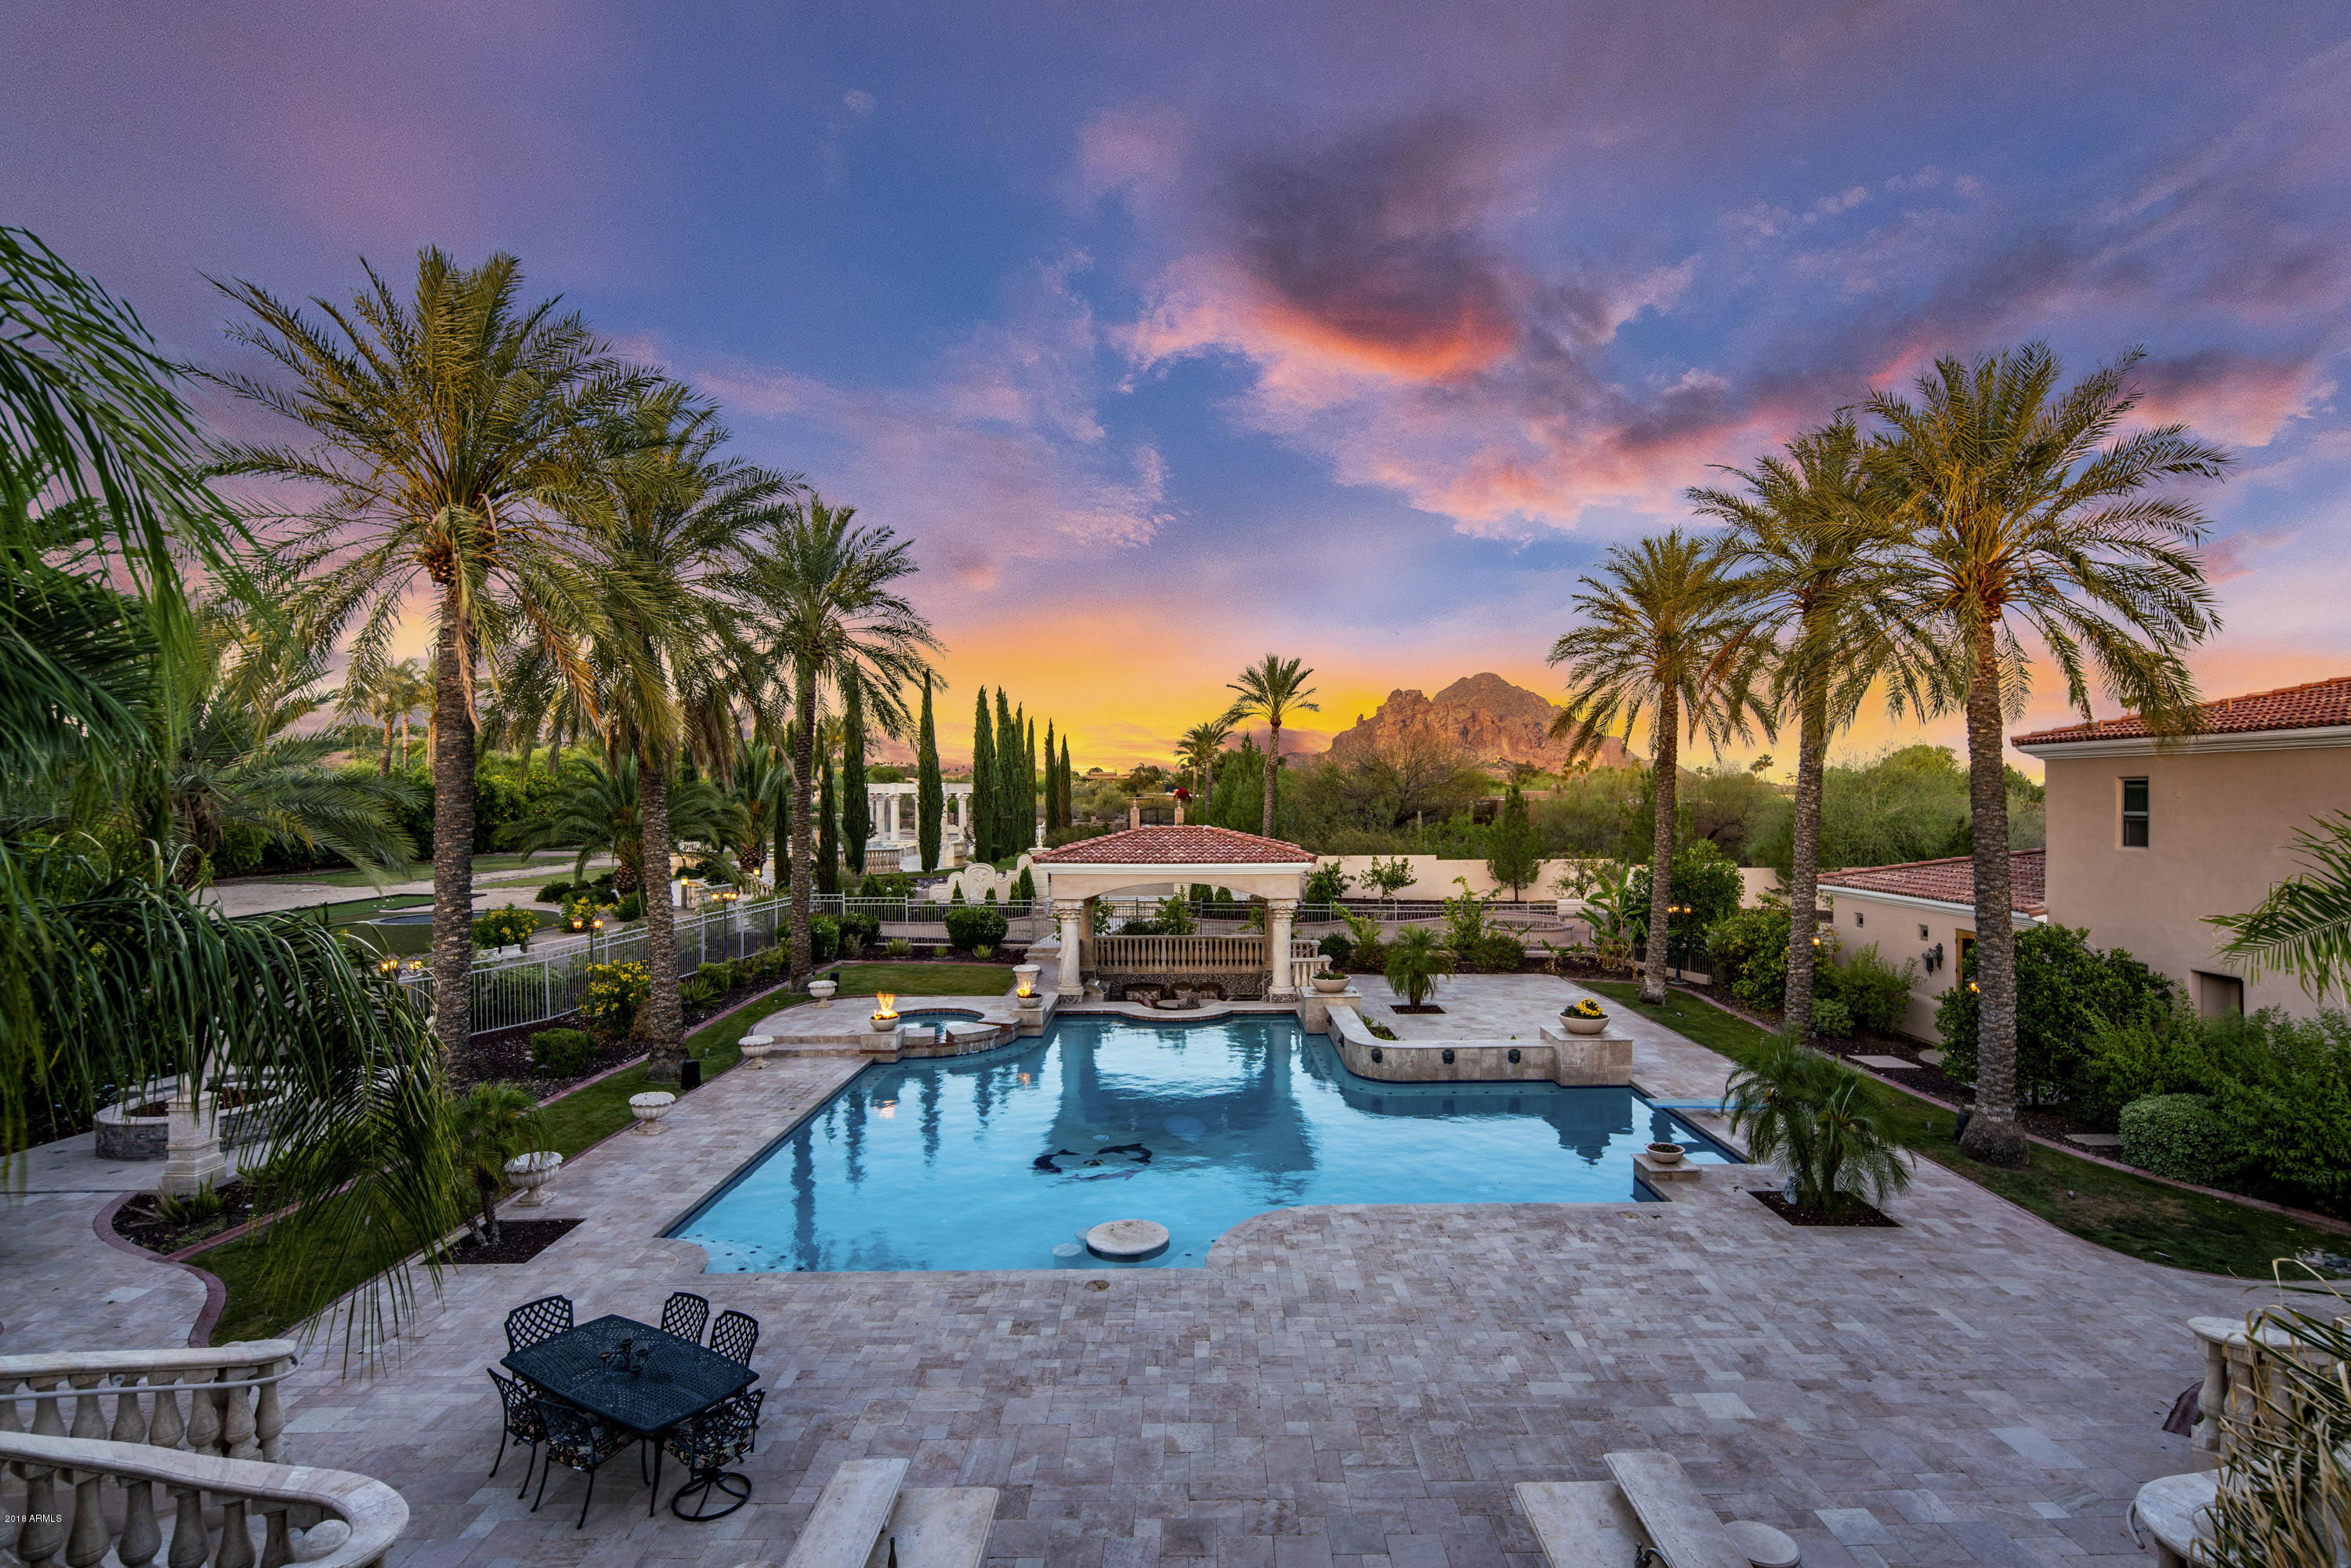 5837 N PALO CRISTI Road, Paradise Valley, Arizona